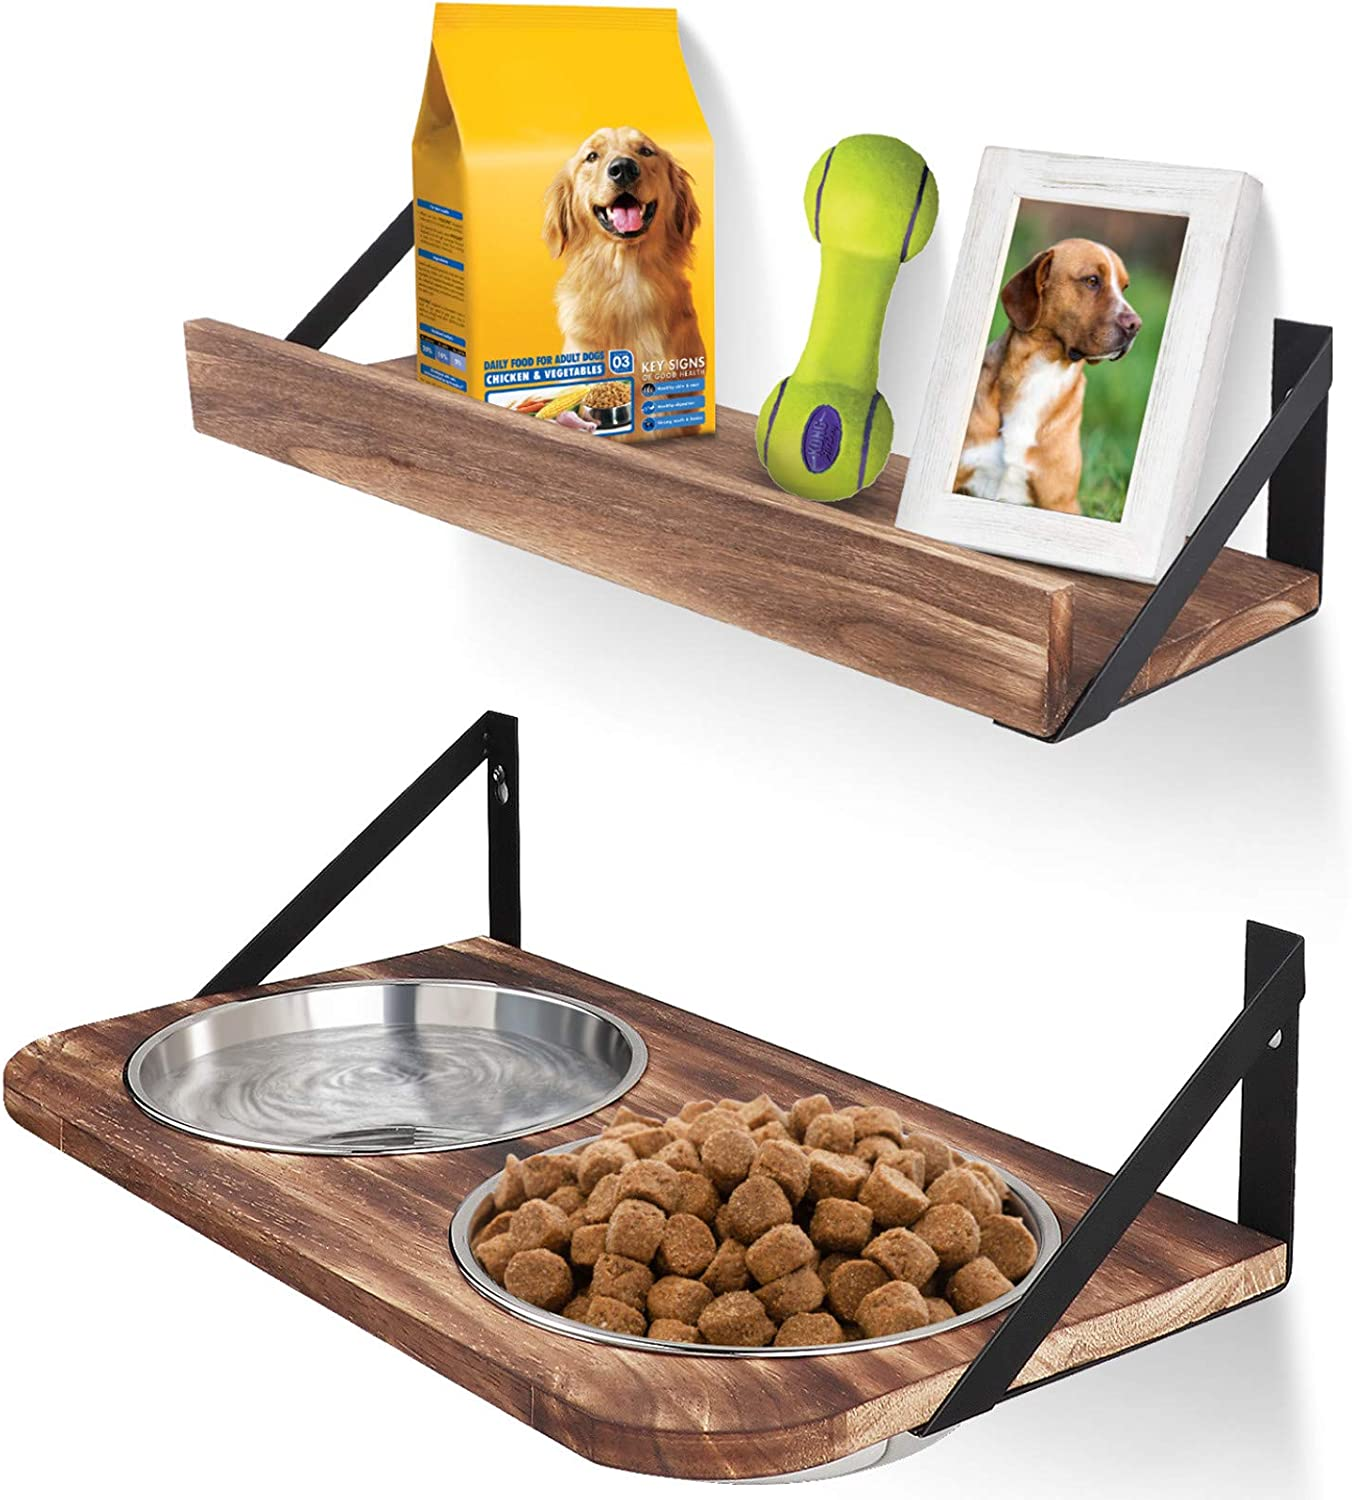 Emfogo Dog Bowls Customized Height Wall Mounted Elevated Pet Feeder with 2 Stainless Steel Dog or Cat Dishes and Storage Shelf Rustic Wood Raised Pet Bowls 15.7 in L